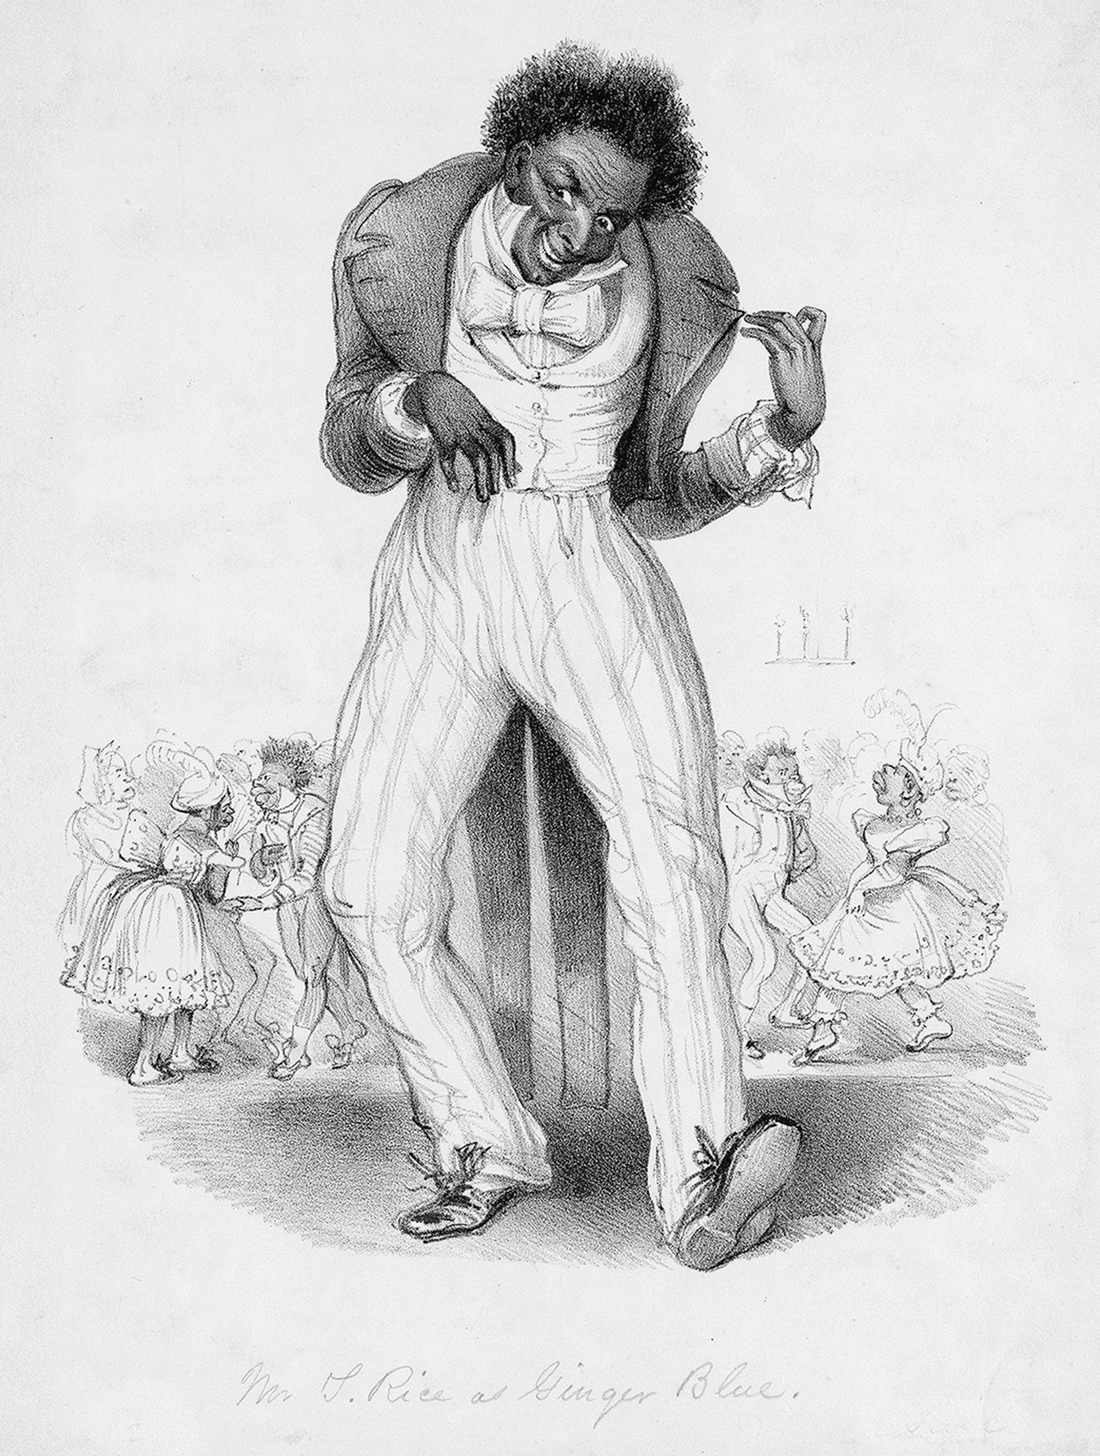 From Allegorical Type and Sartorial Satire to Minstrel Dandy